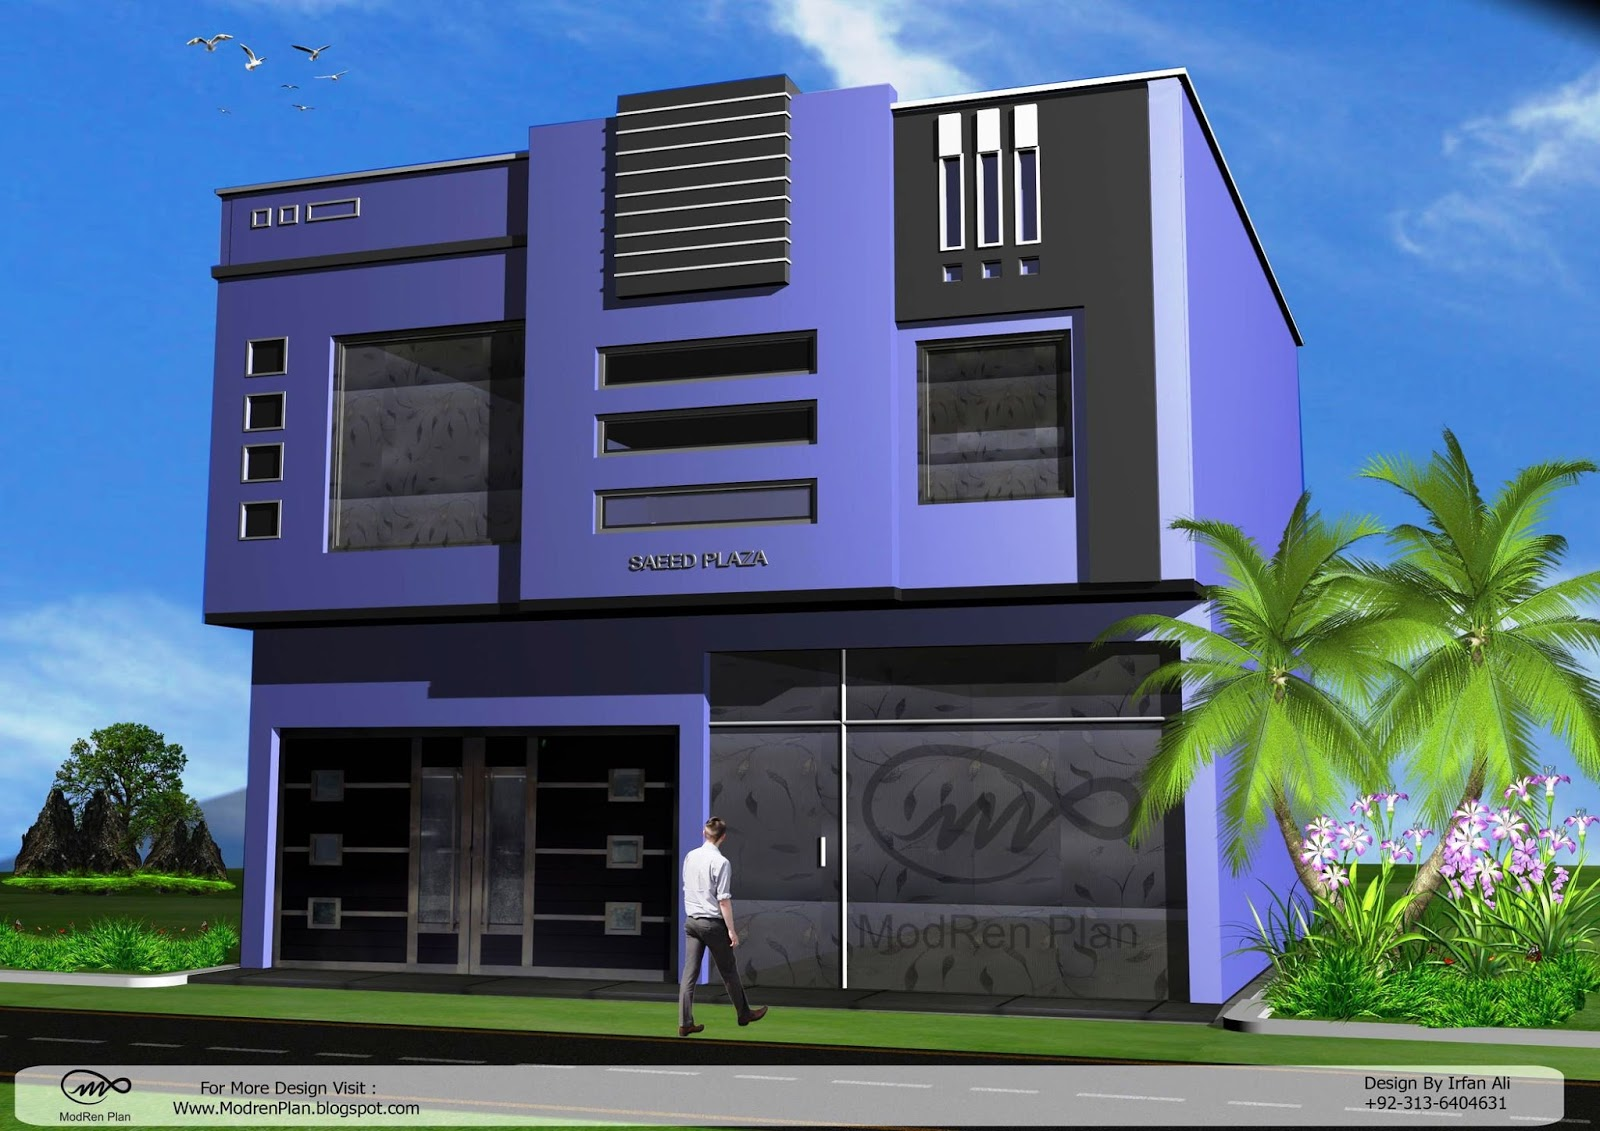 Design Of Front Elevation Of Commercial Building : Modern commercial building designs and plaza front elevation